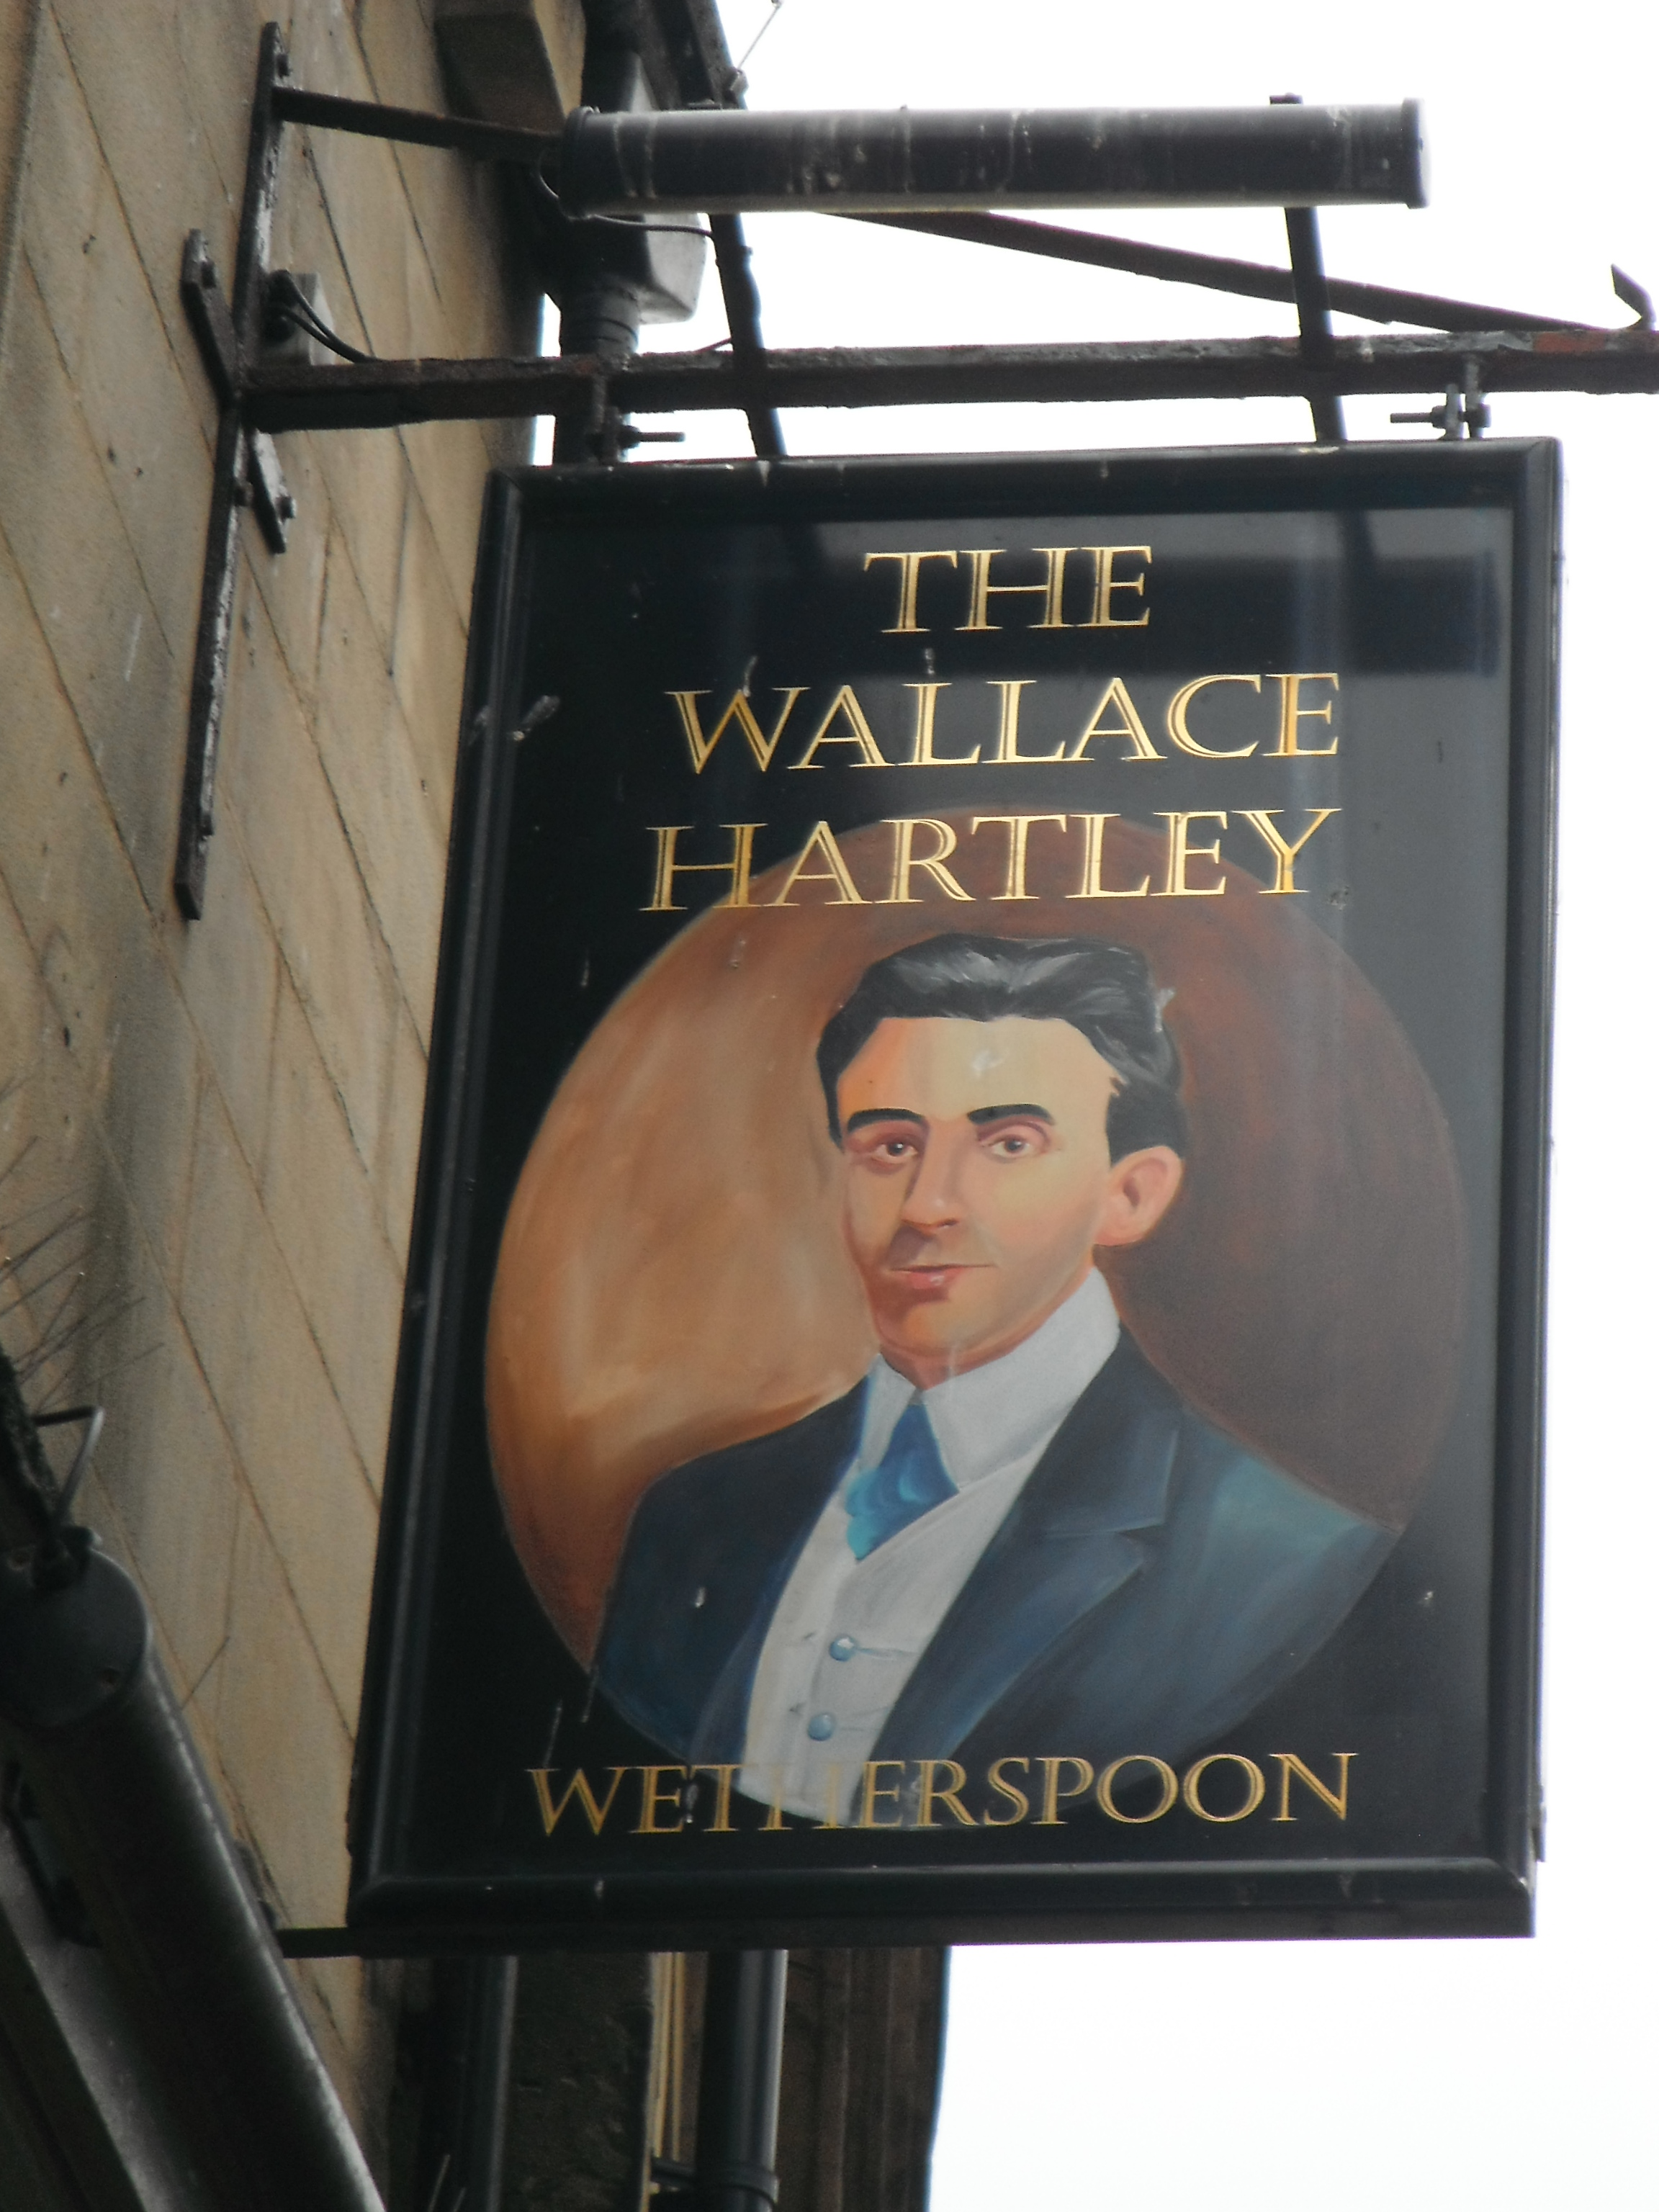 Photo taken by me - The Wallace Hartley pub sign - Colne Lancashire